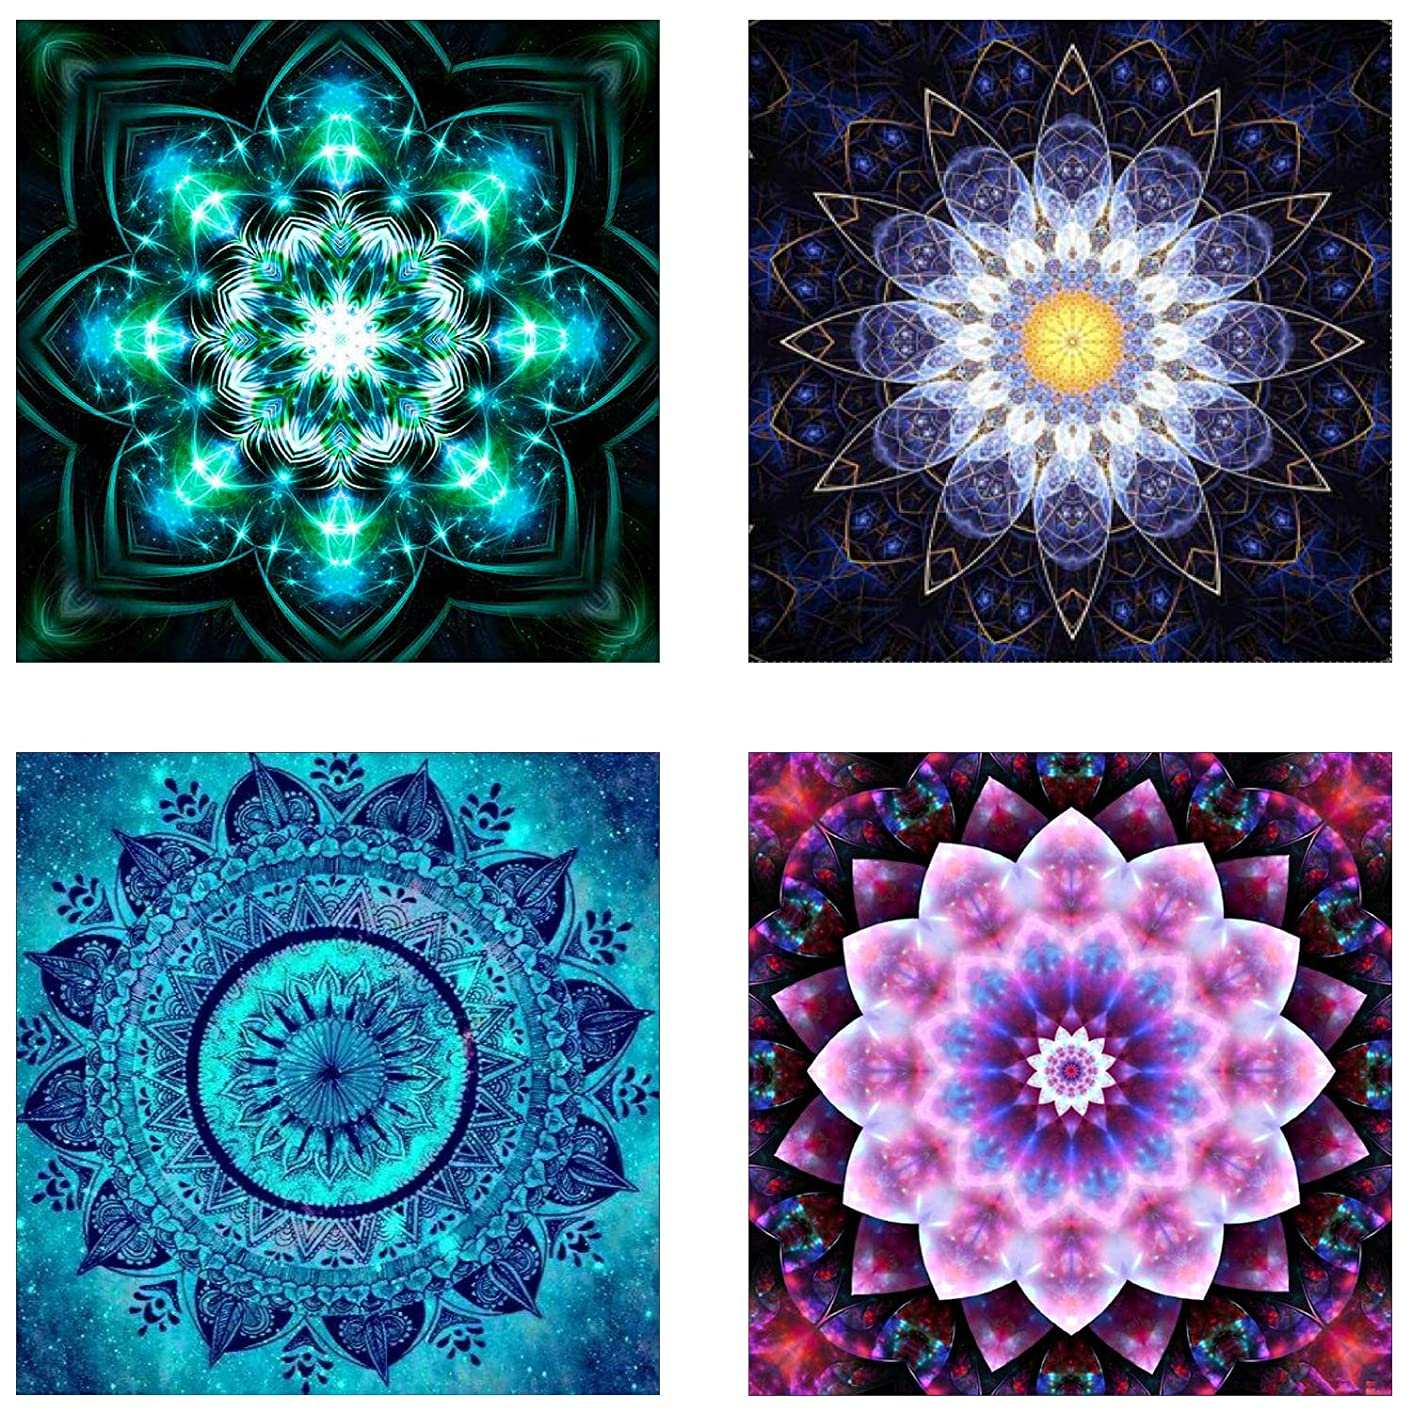 4 Pack 5D DIY Diamond Painting Set Decorating Cabinet Table Stickers Crystal Rhinestone Diamond Embroidery Paintings Pictures for Study Room,Mandala Flower Painting(25X25CM/9.8X9.8inch)